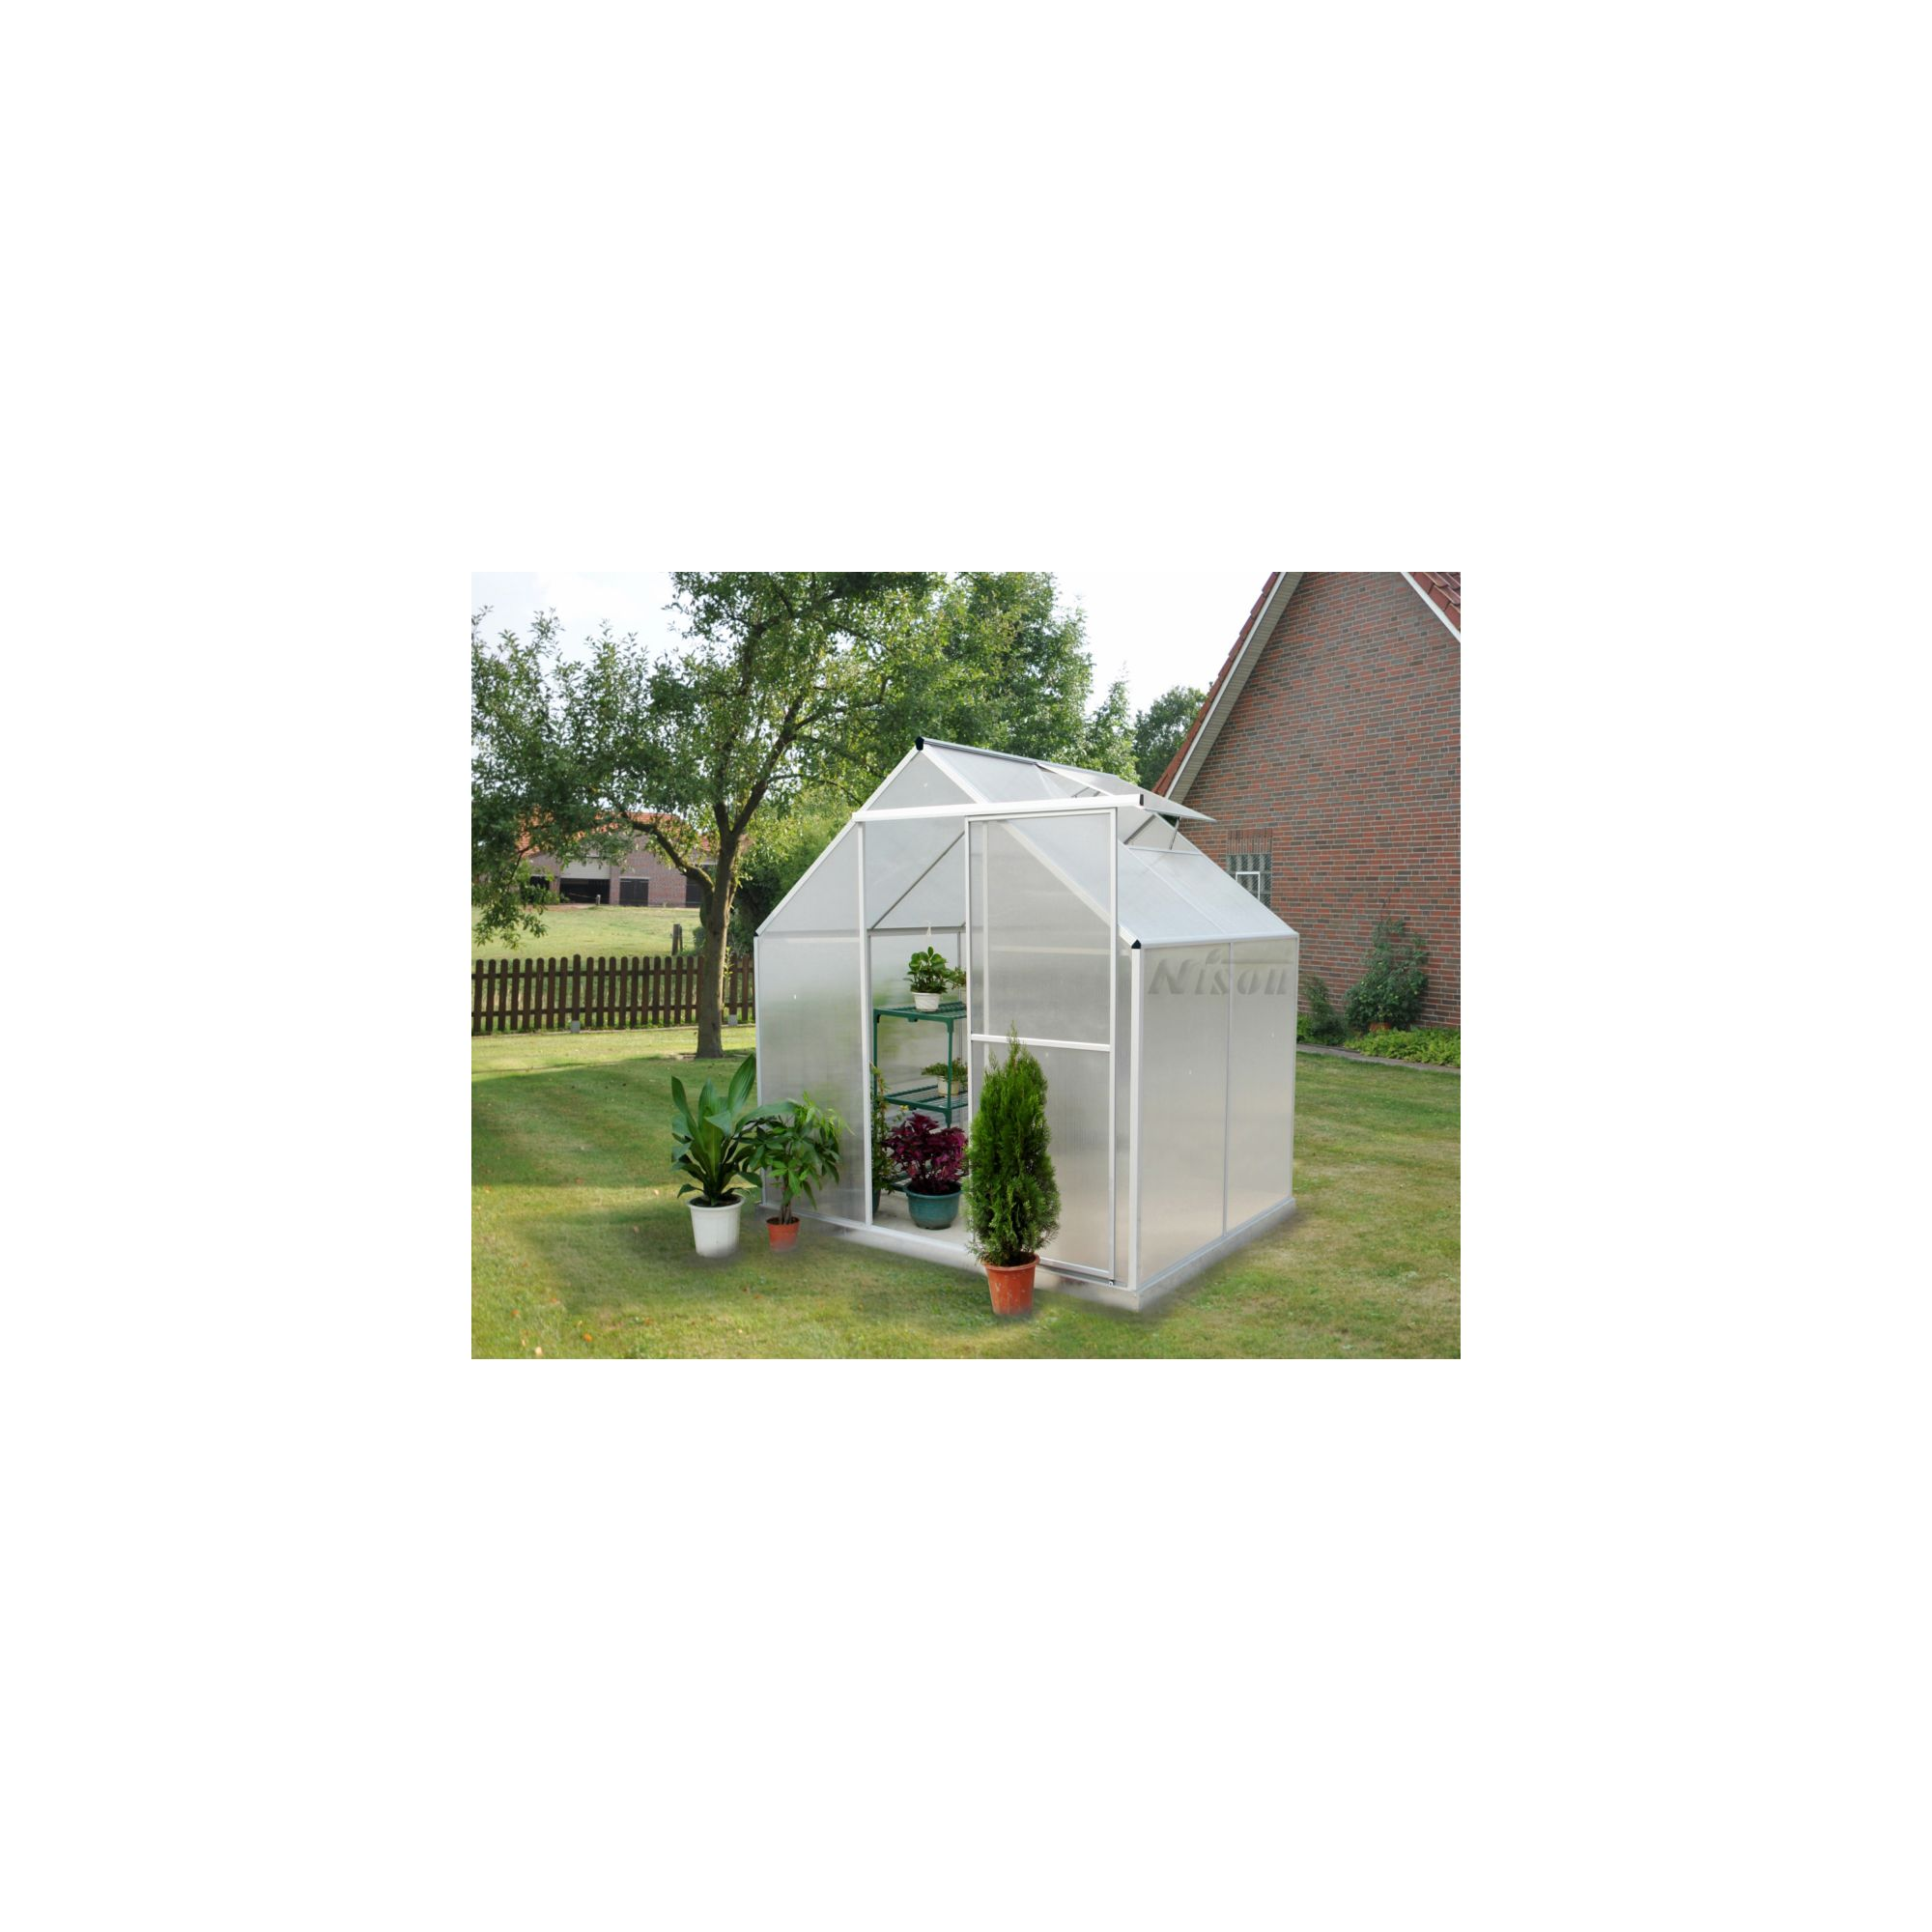 Nison Aquila 4x6 Aluminium Polycarbonate Greenhouse, Including Base & Free Shelving at Tesco Direct